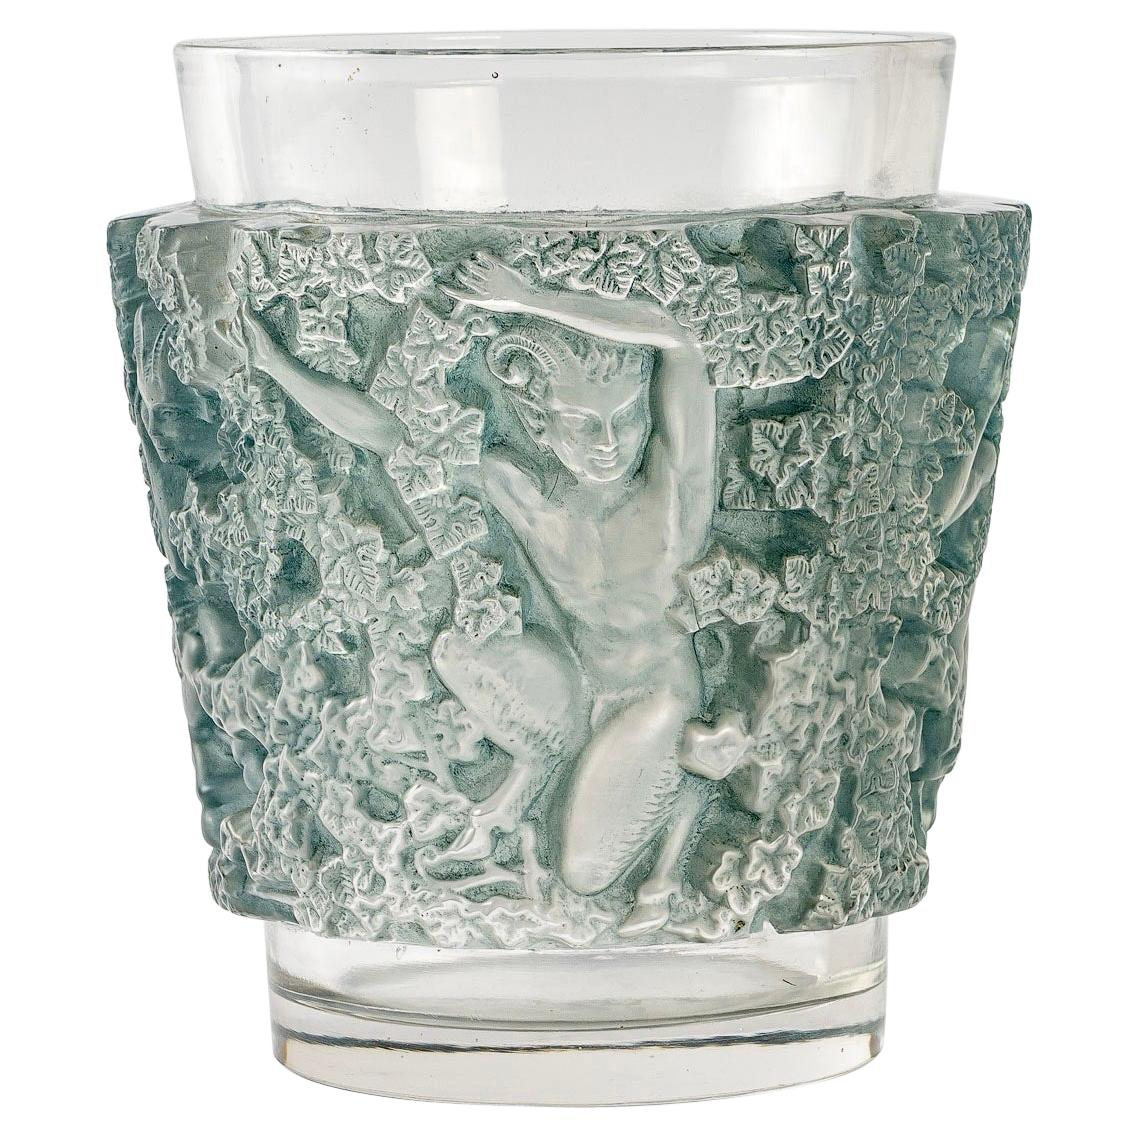 1938 René Lalique Bacchus Vase in Frosted Glass with Blue Patina